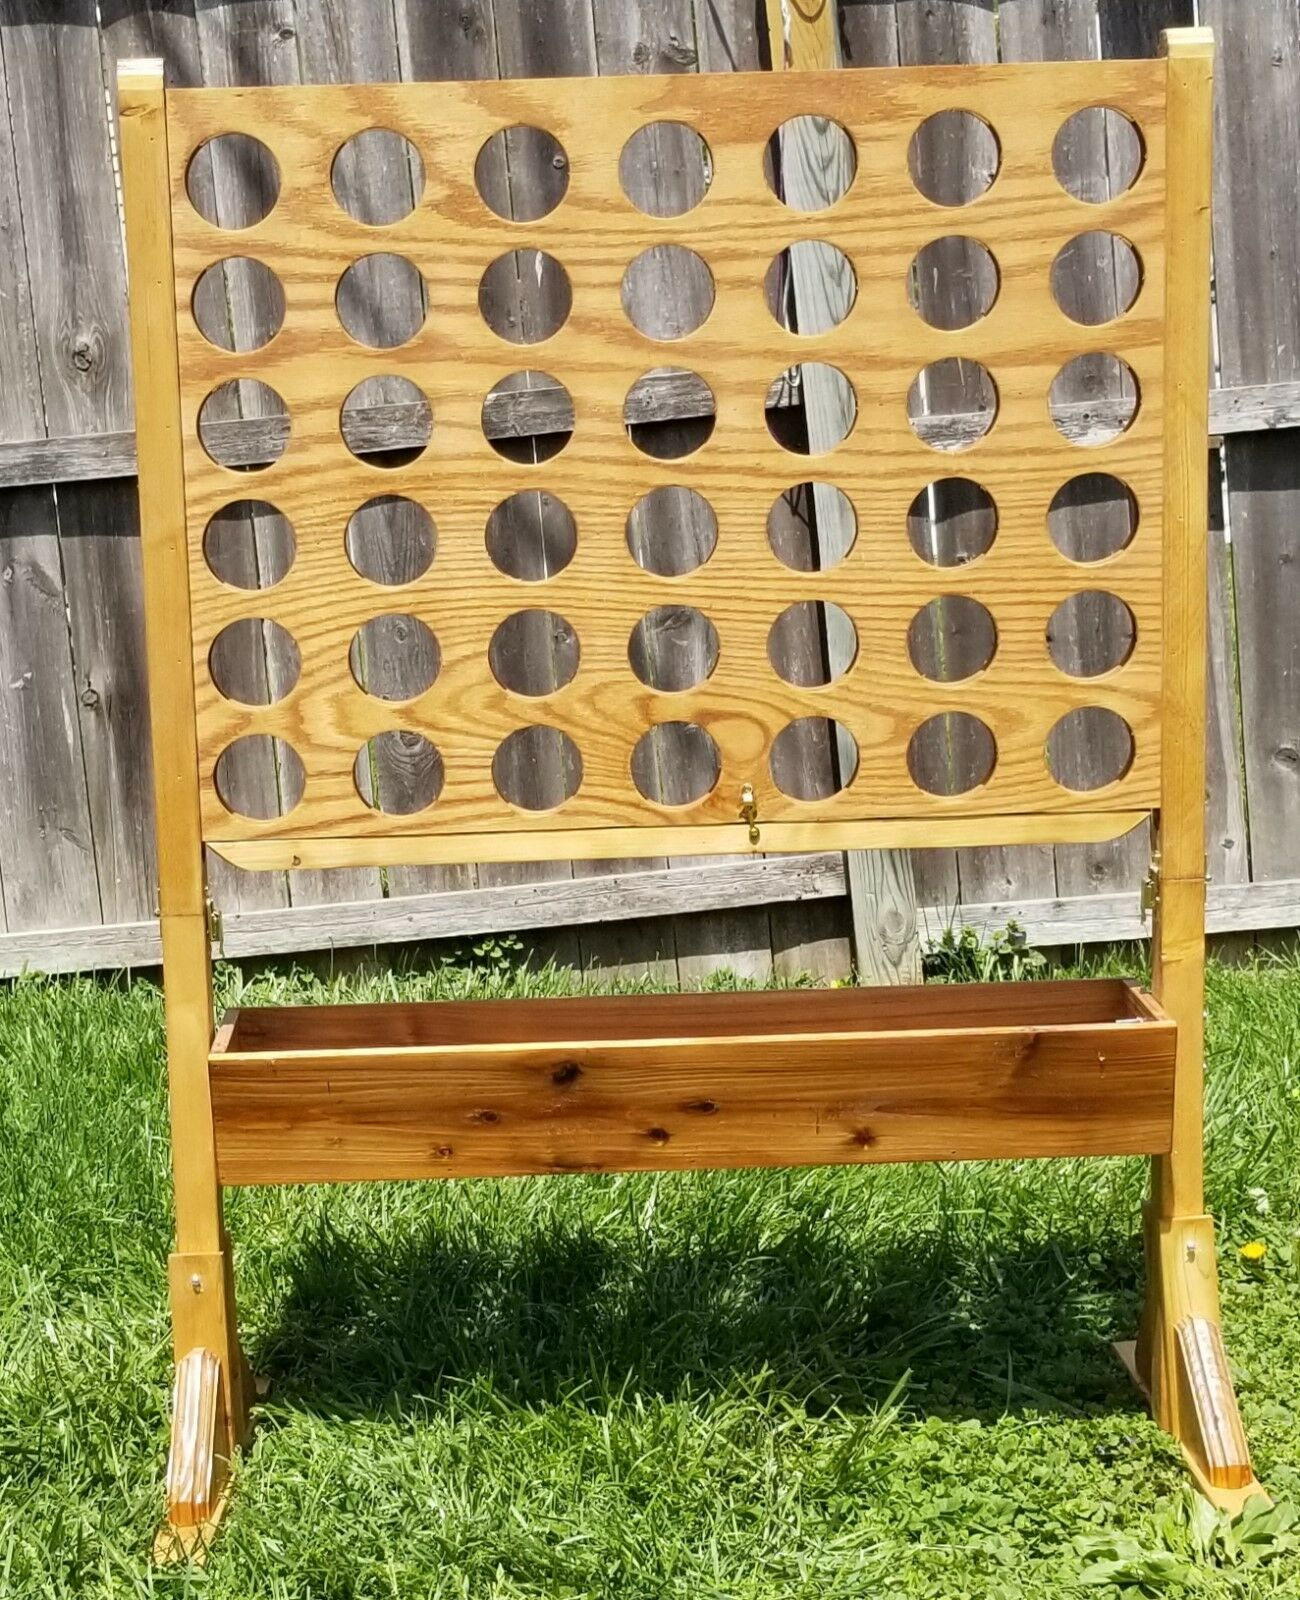 Giant connect 4 game with catch trough